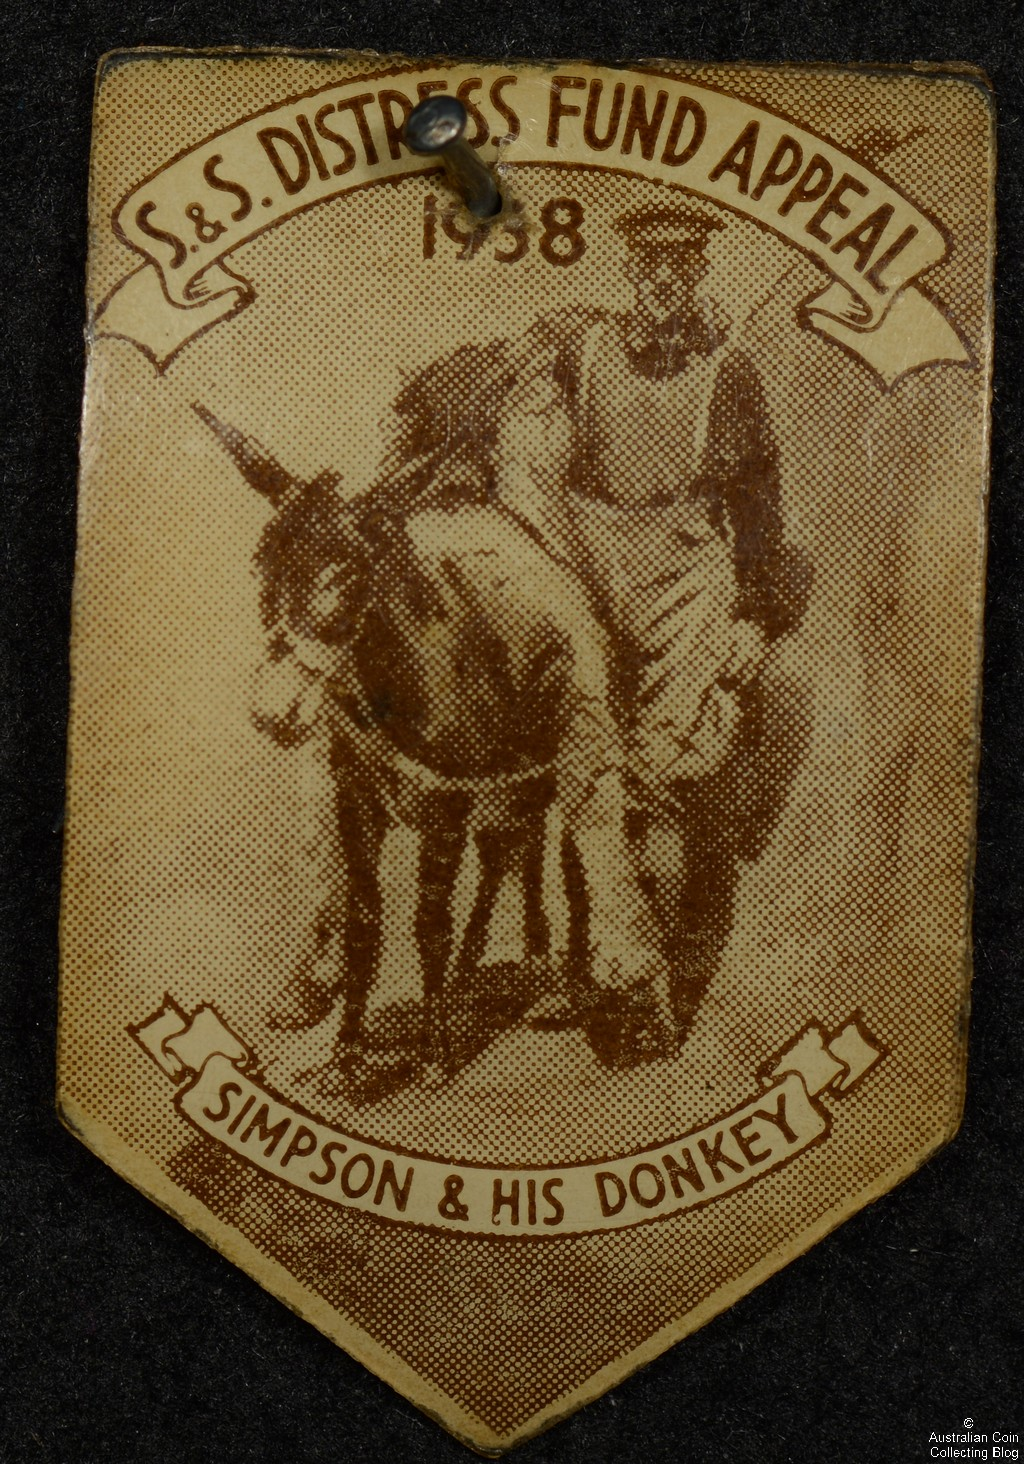 Simpson and His Donkey S & S Distress Fund Appeal 1938 Badge